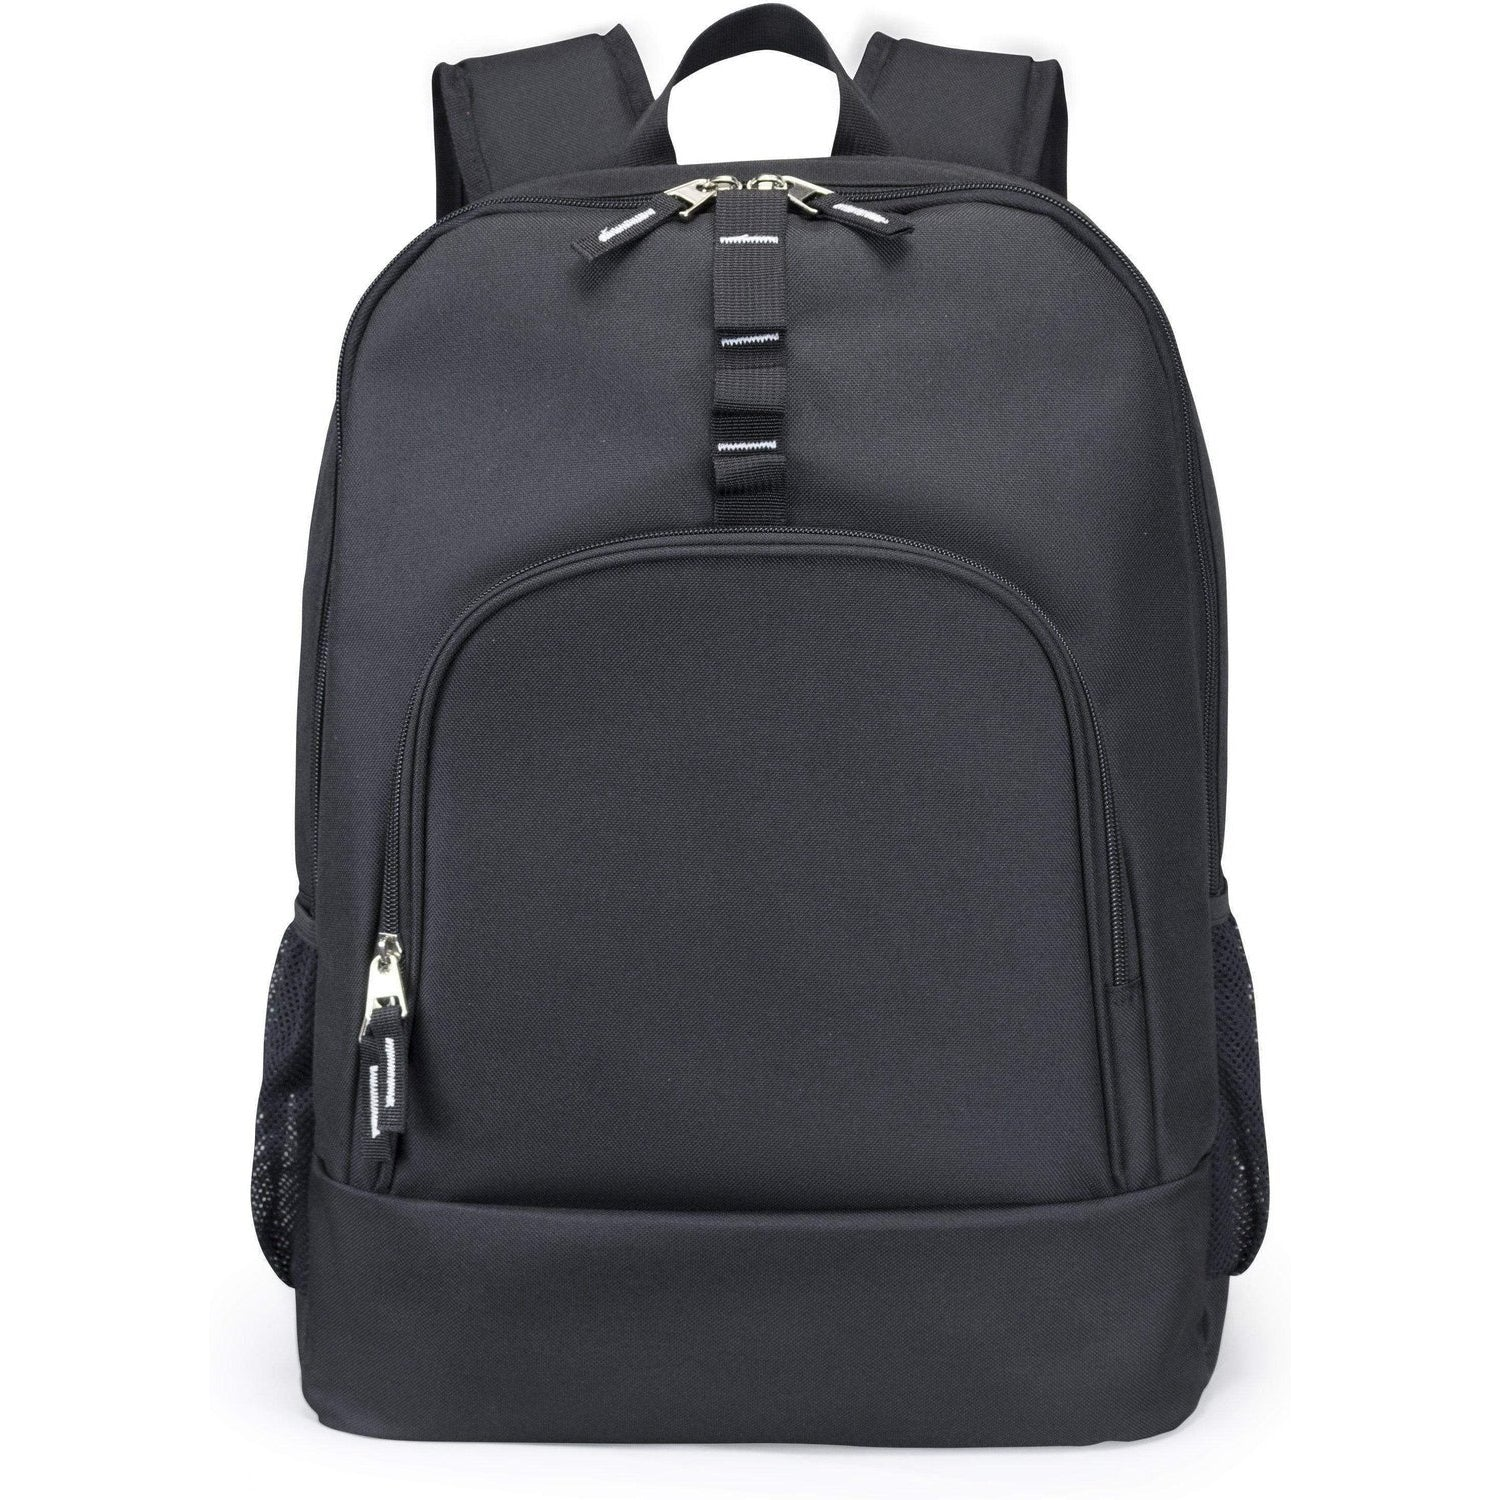 Poly COMPUTER Backpack w/ Padded Back Panel - HP2218